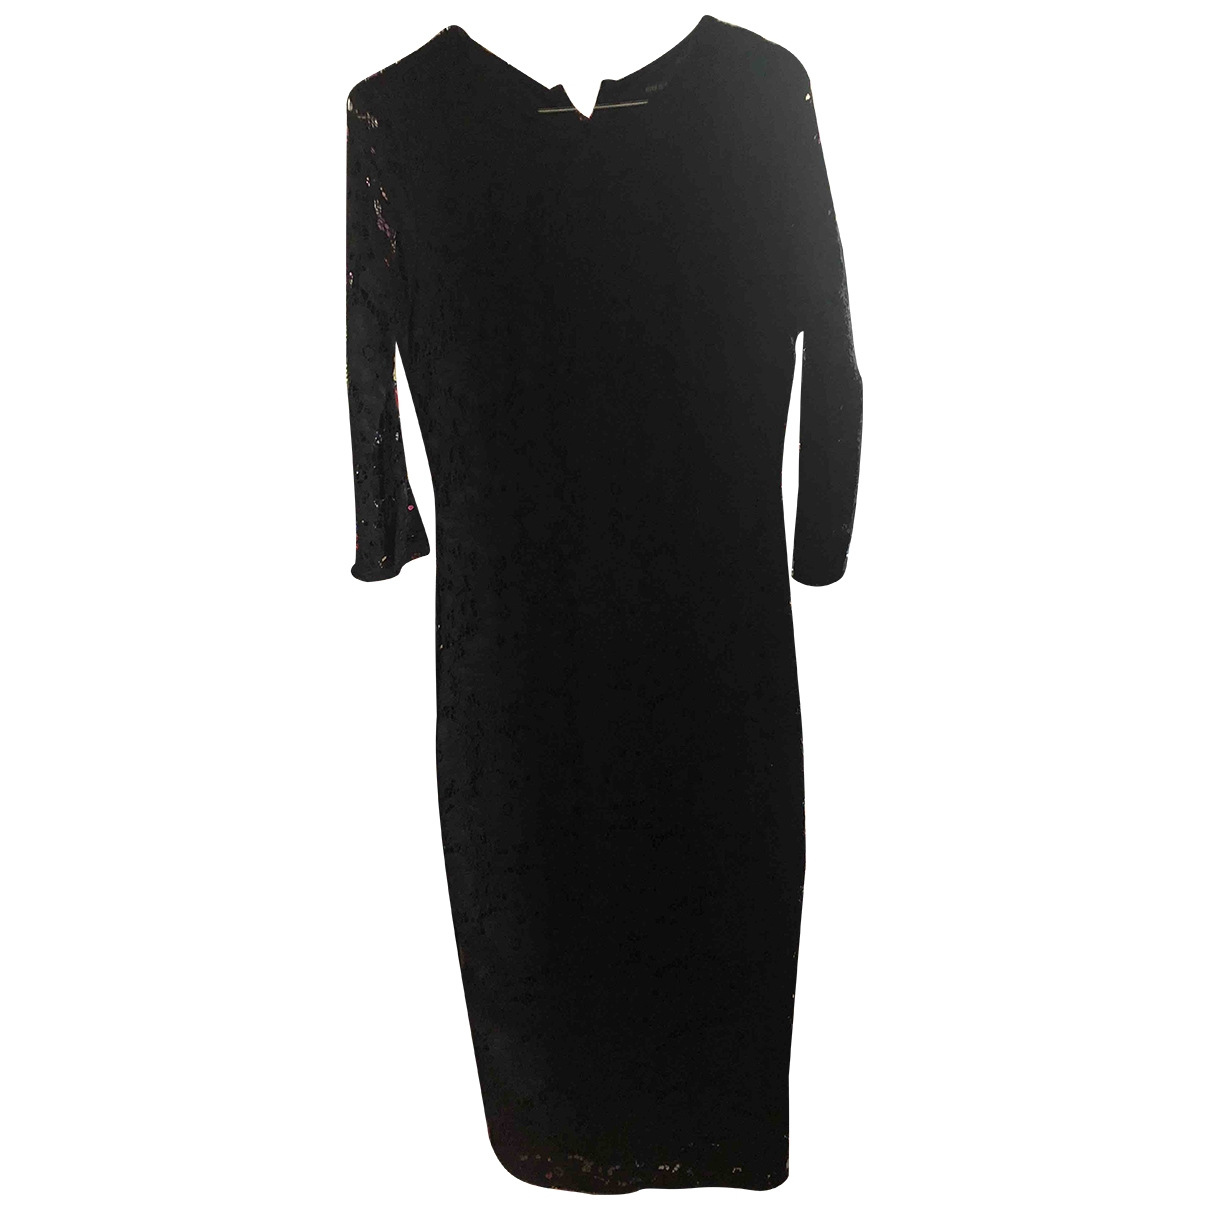 River Island \N Black Lace dress for Women 12 UK